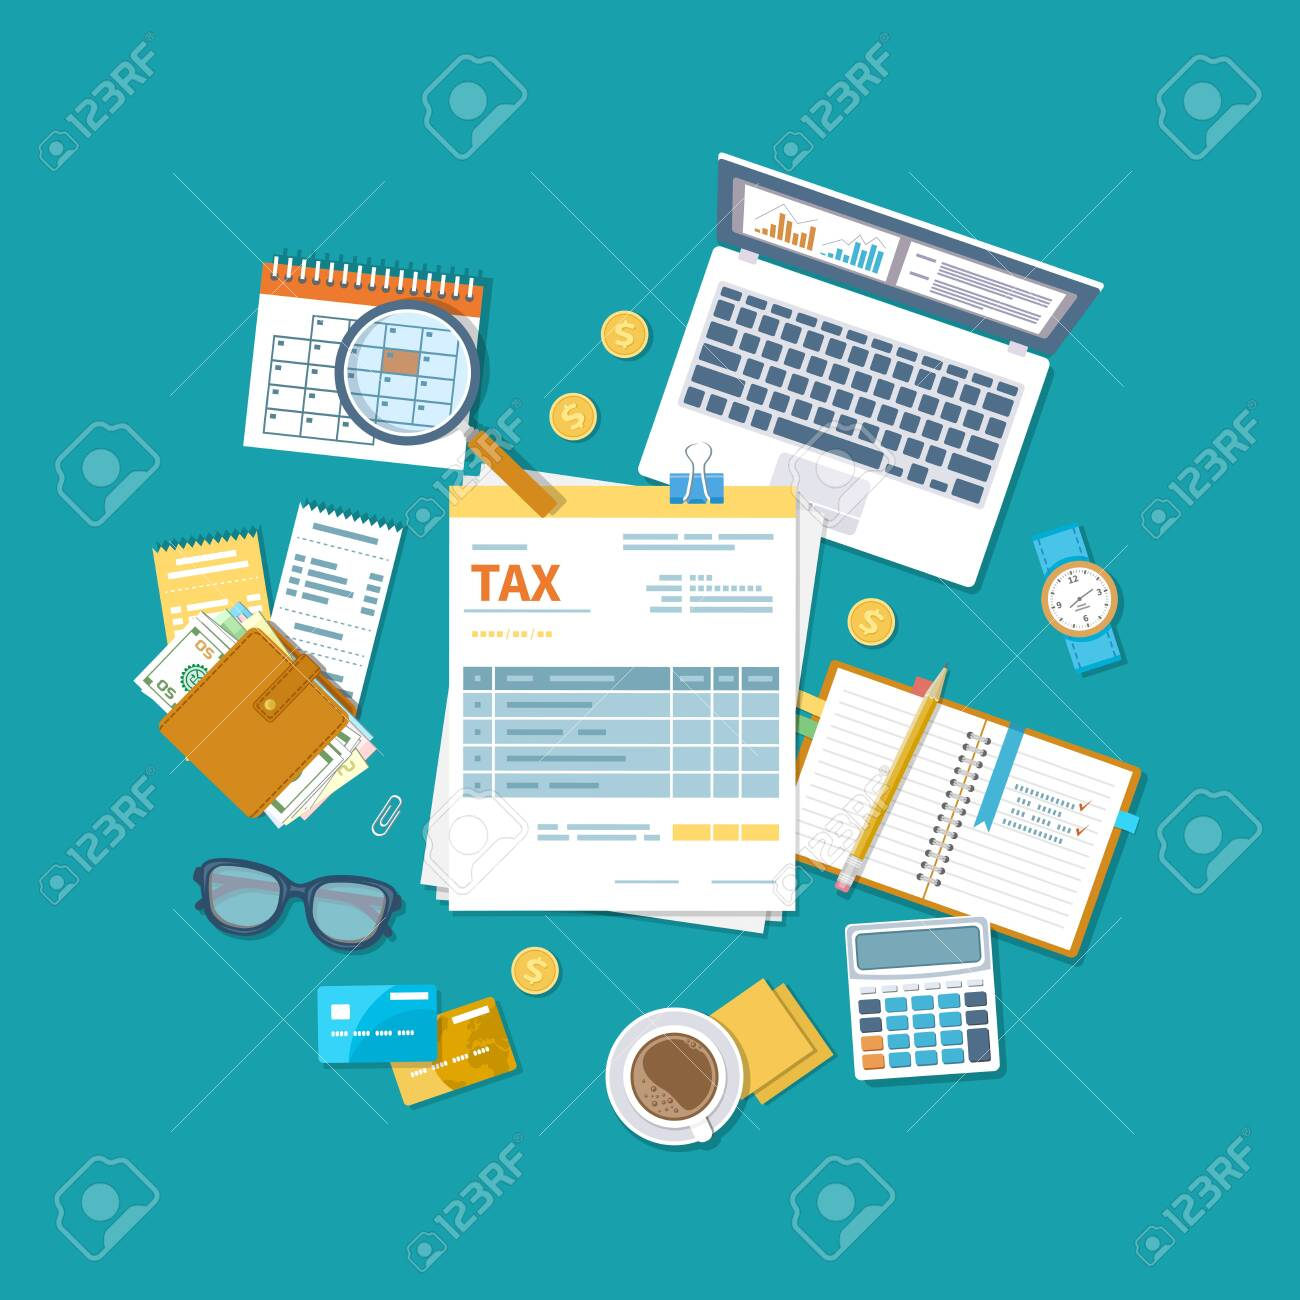 Tax payment concept. State Government taxation, calculation of tax return. Unfilled blank tax form, calendar, magnifier, money, notebook, calculator, coins, glasses, watches, documents, computer. - 150957417